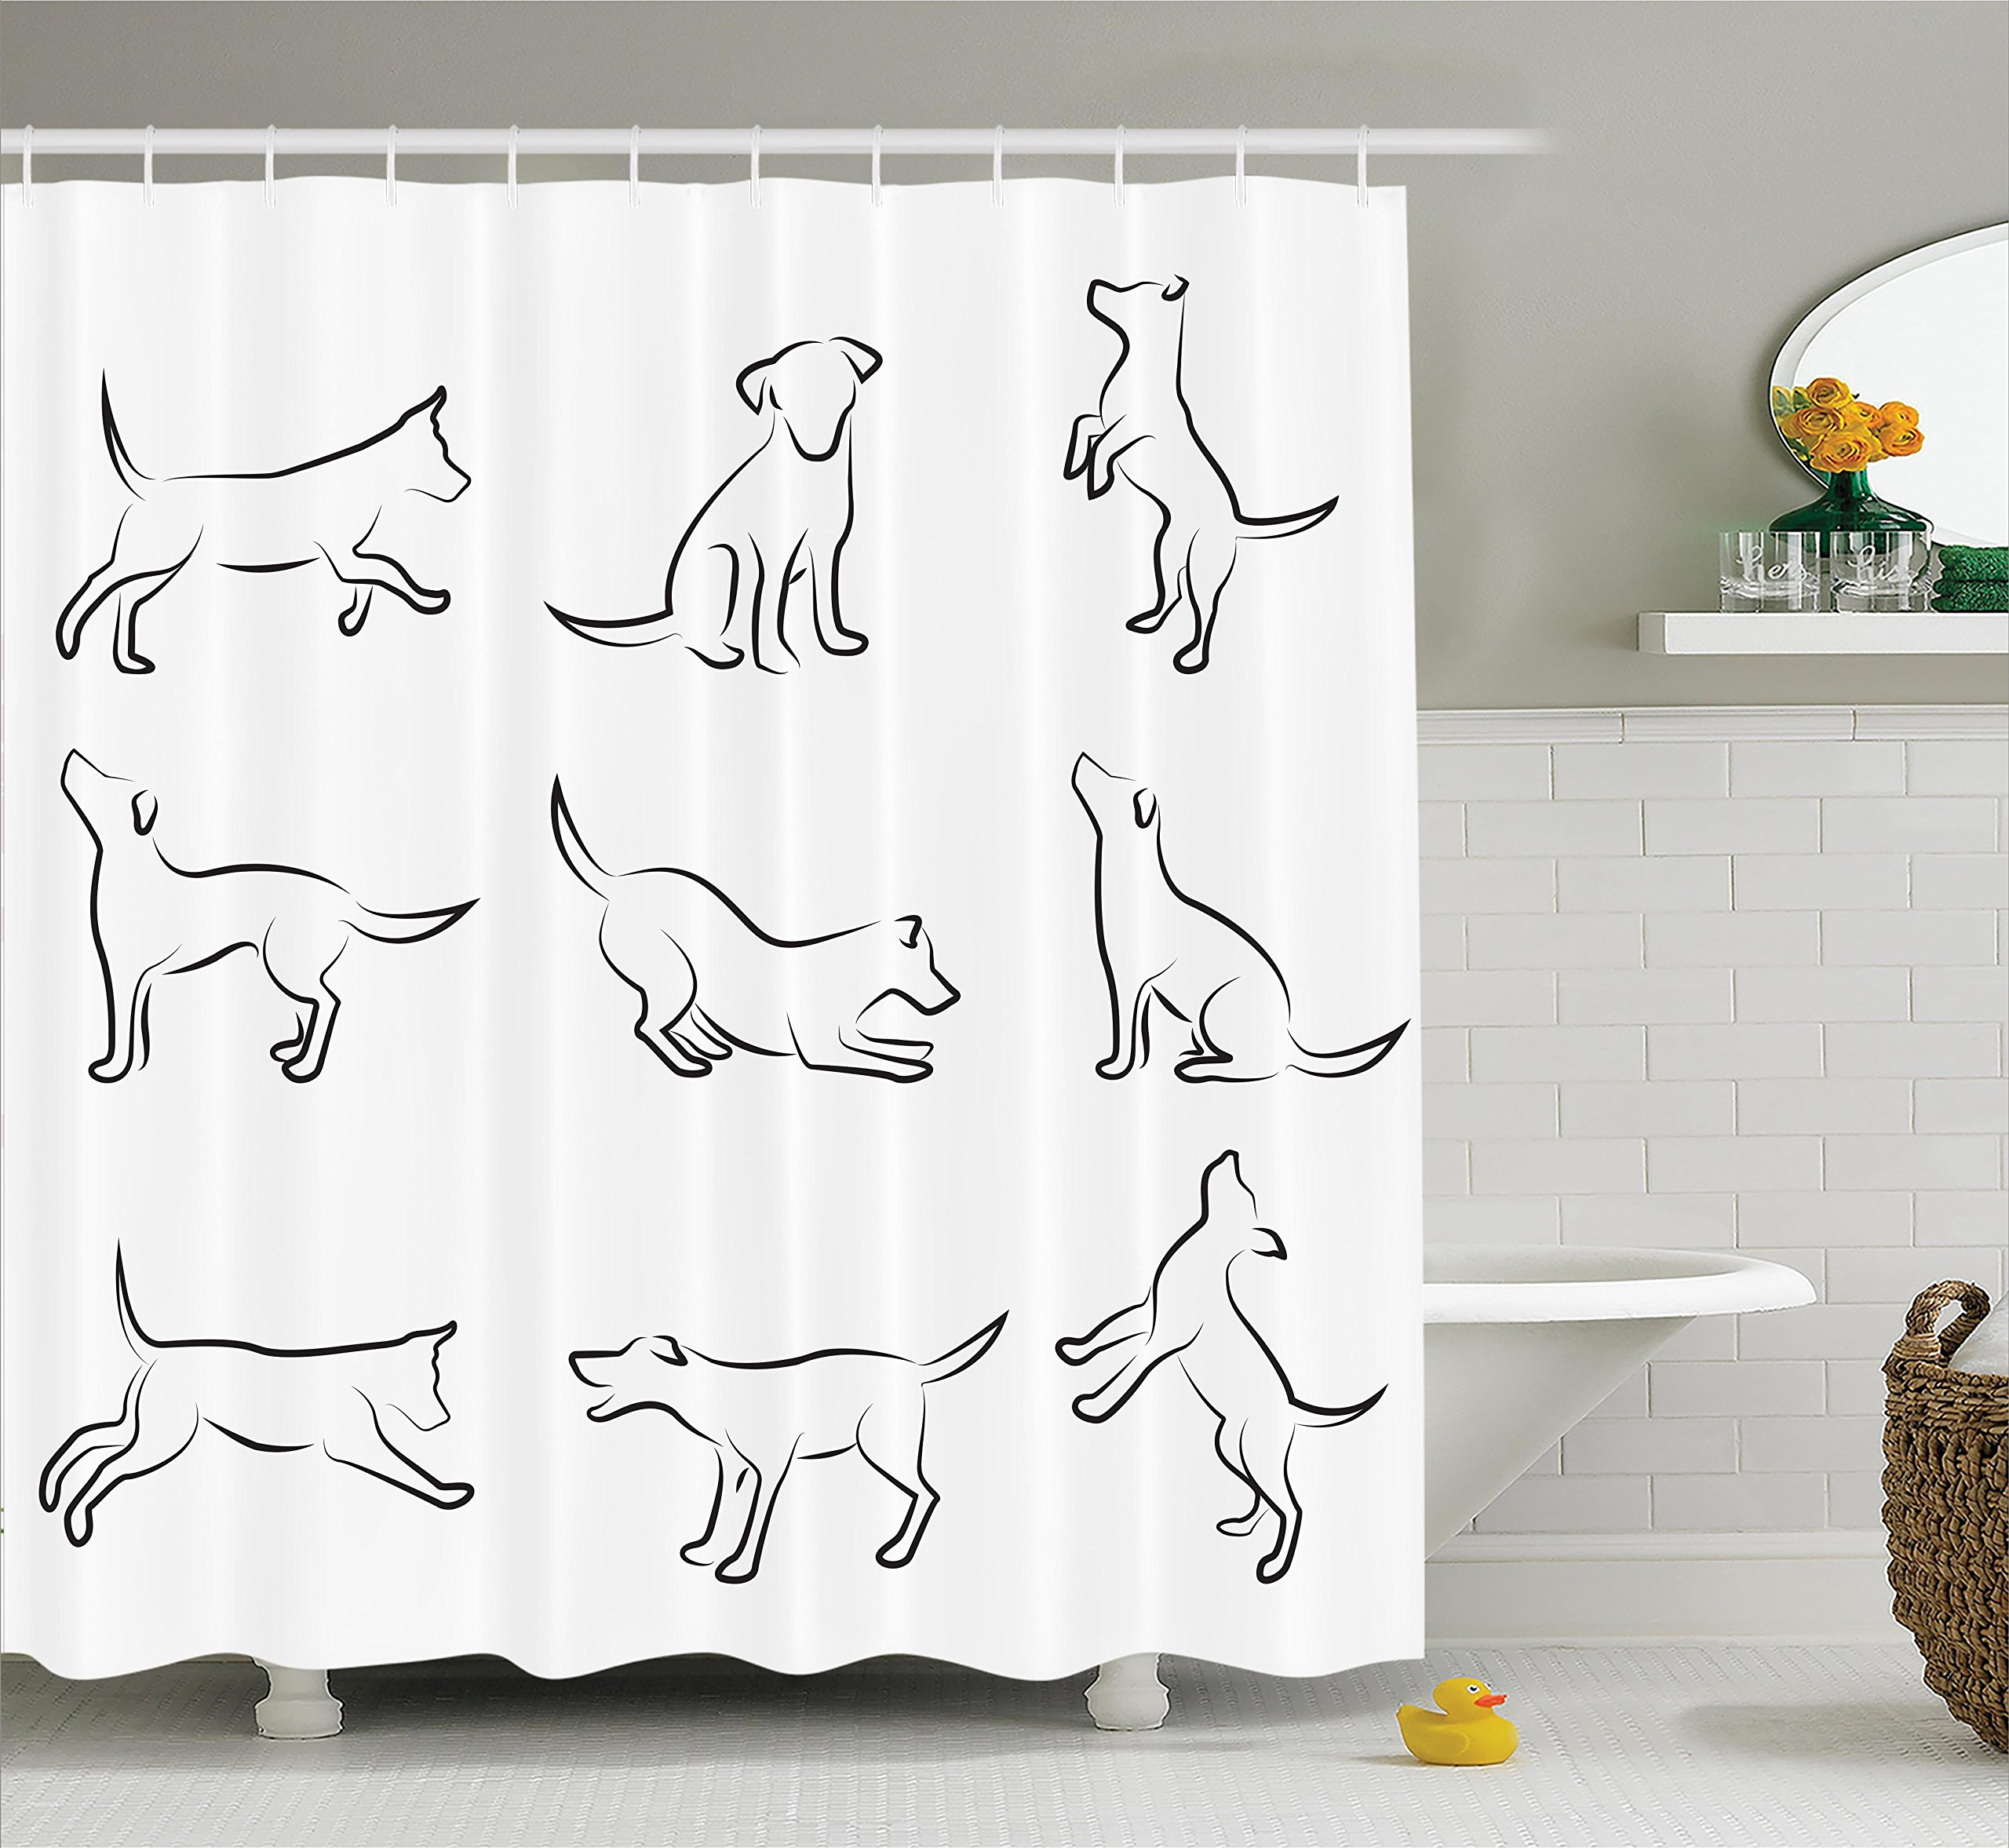 Ambesonne Dog Lover Decor Shower Curtain Set, Digital Sketches of a Puppy Moving Around Scratching Simple Life Style Artistic Work, Bathroom Accessories, 75 Inches Long, White Black